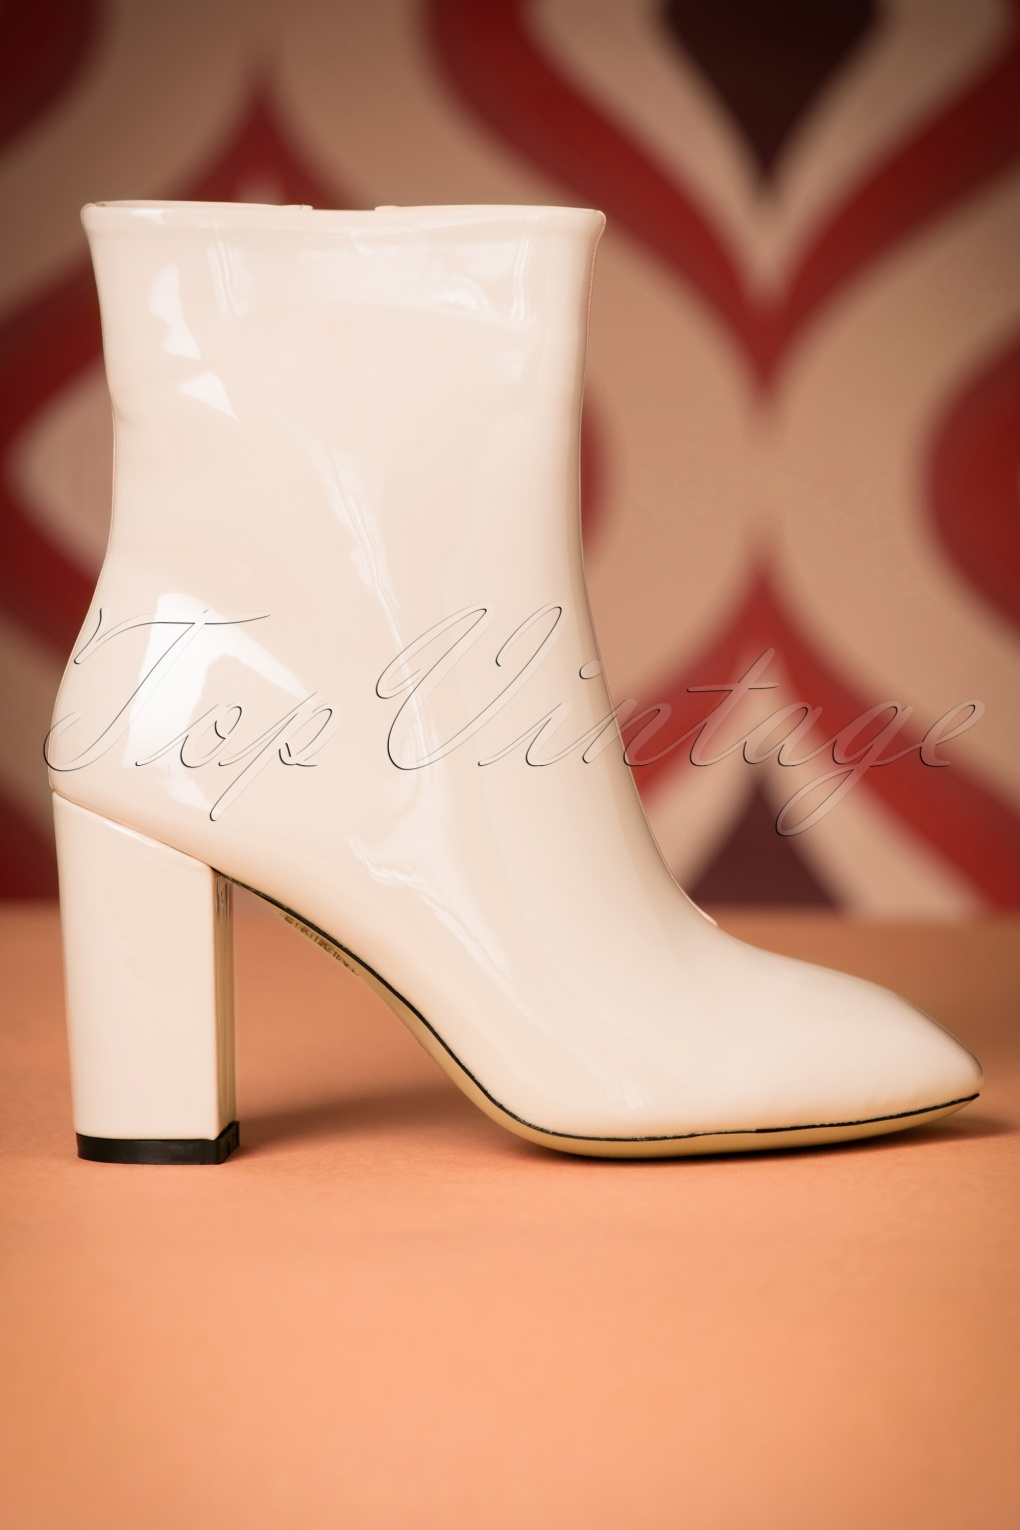 Vintage Style Shoes, Vintage Inspired Shoes 60s Runaway Lacquer Booties in Cream £59.34 AT vintagedancer.com